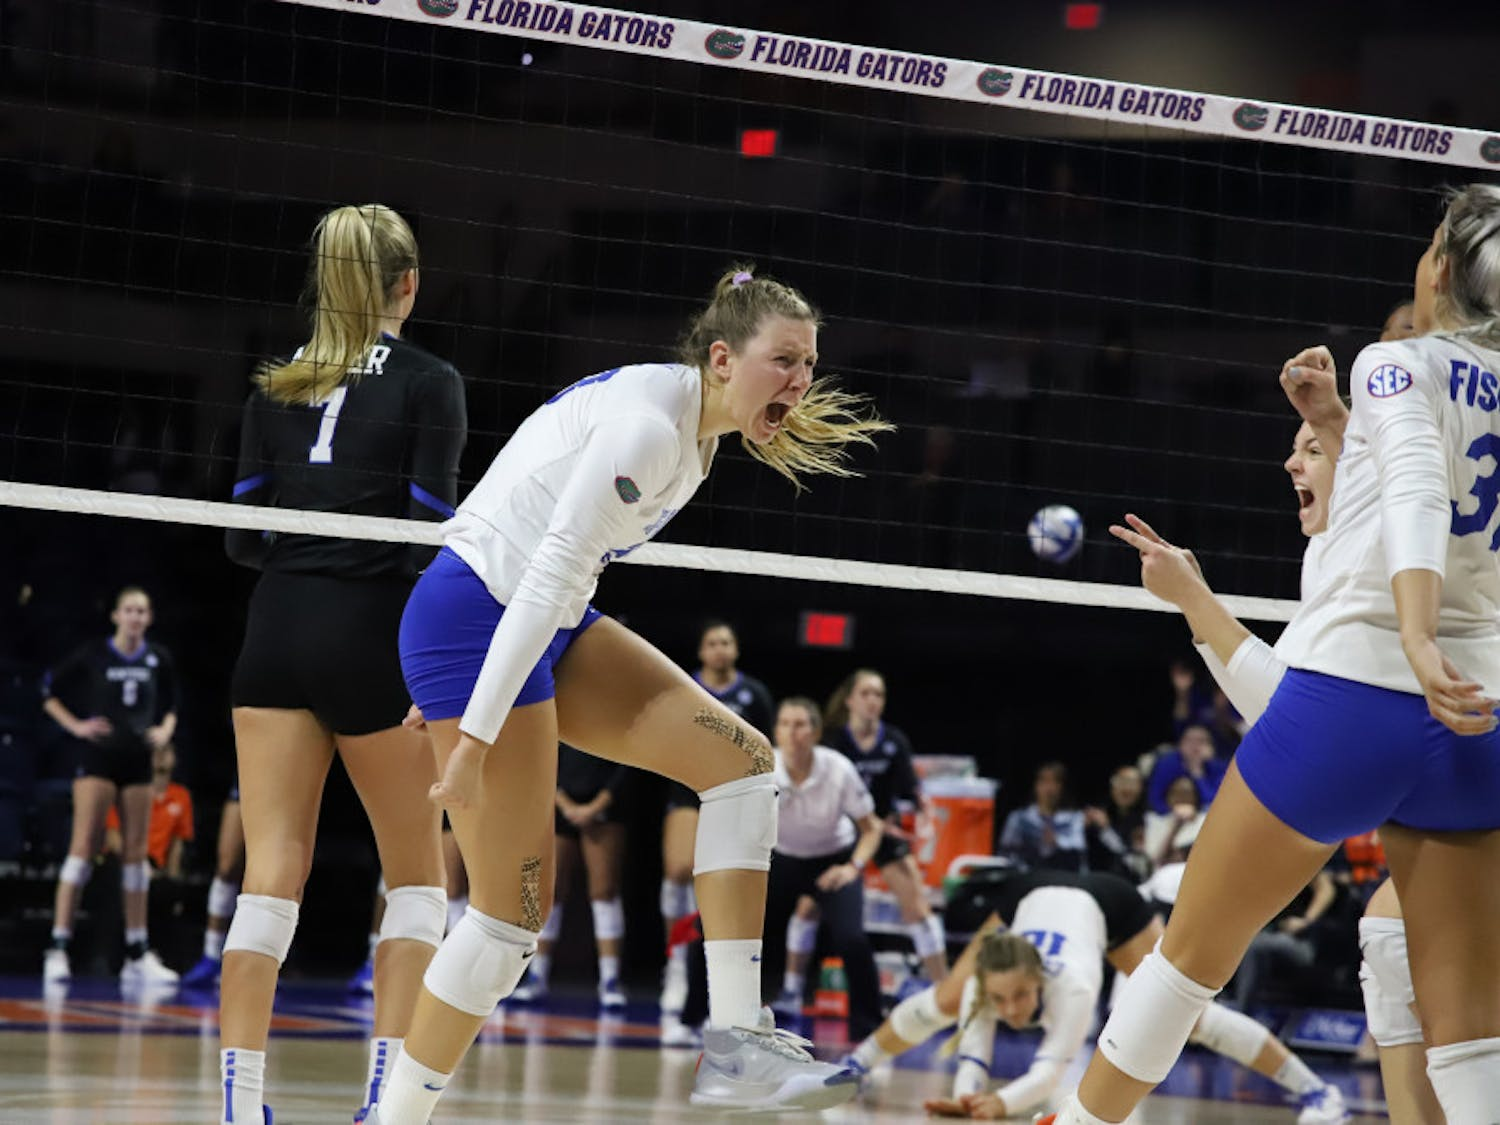 Outside hitter Thayer Hall celebrates in home match against Kentucky last season. This year, Hall was named to the All-SEC Preseason Team.